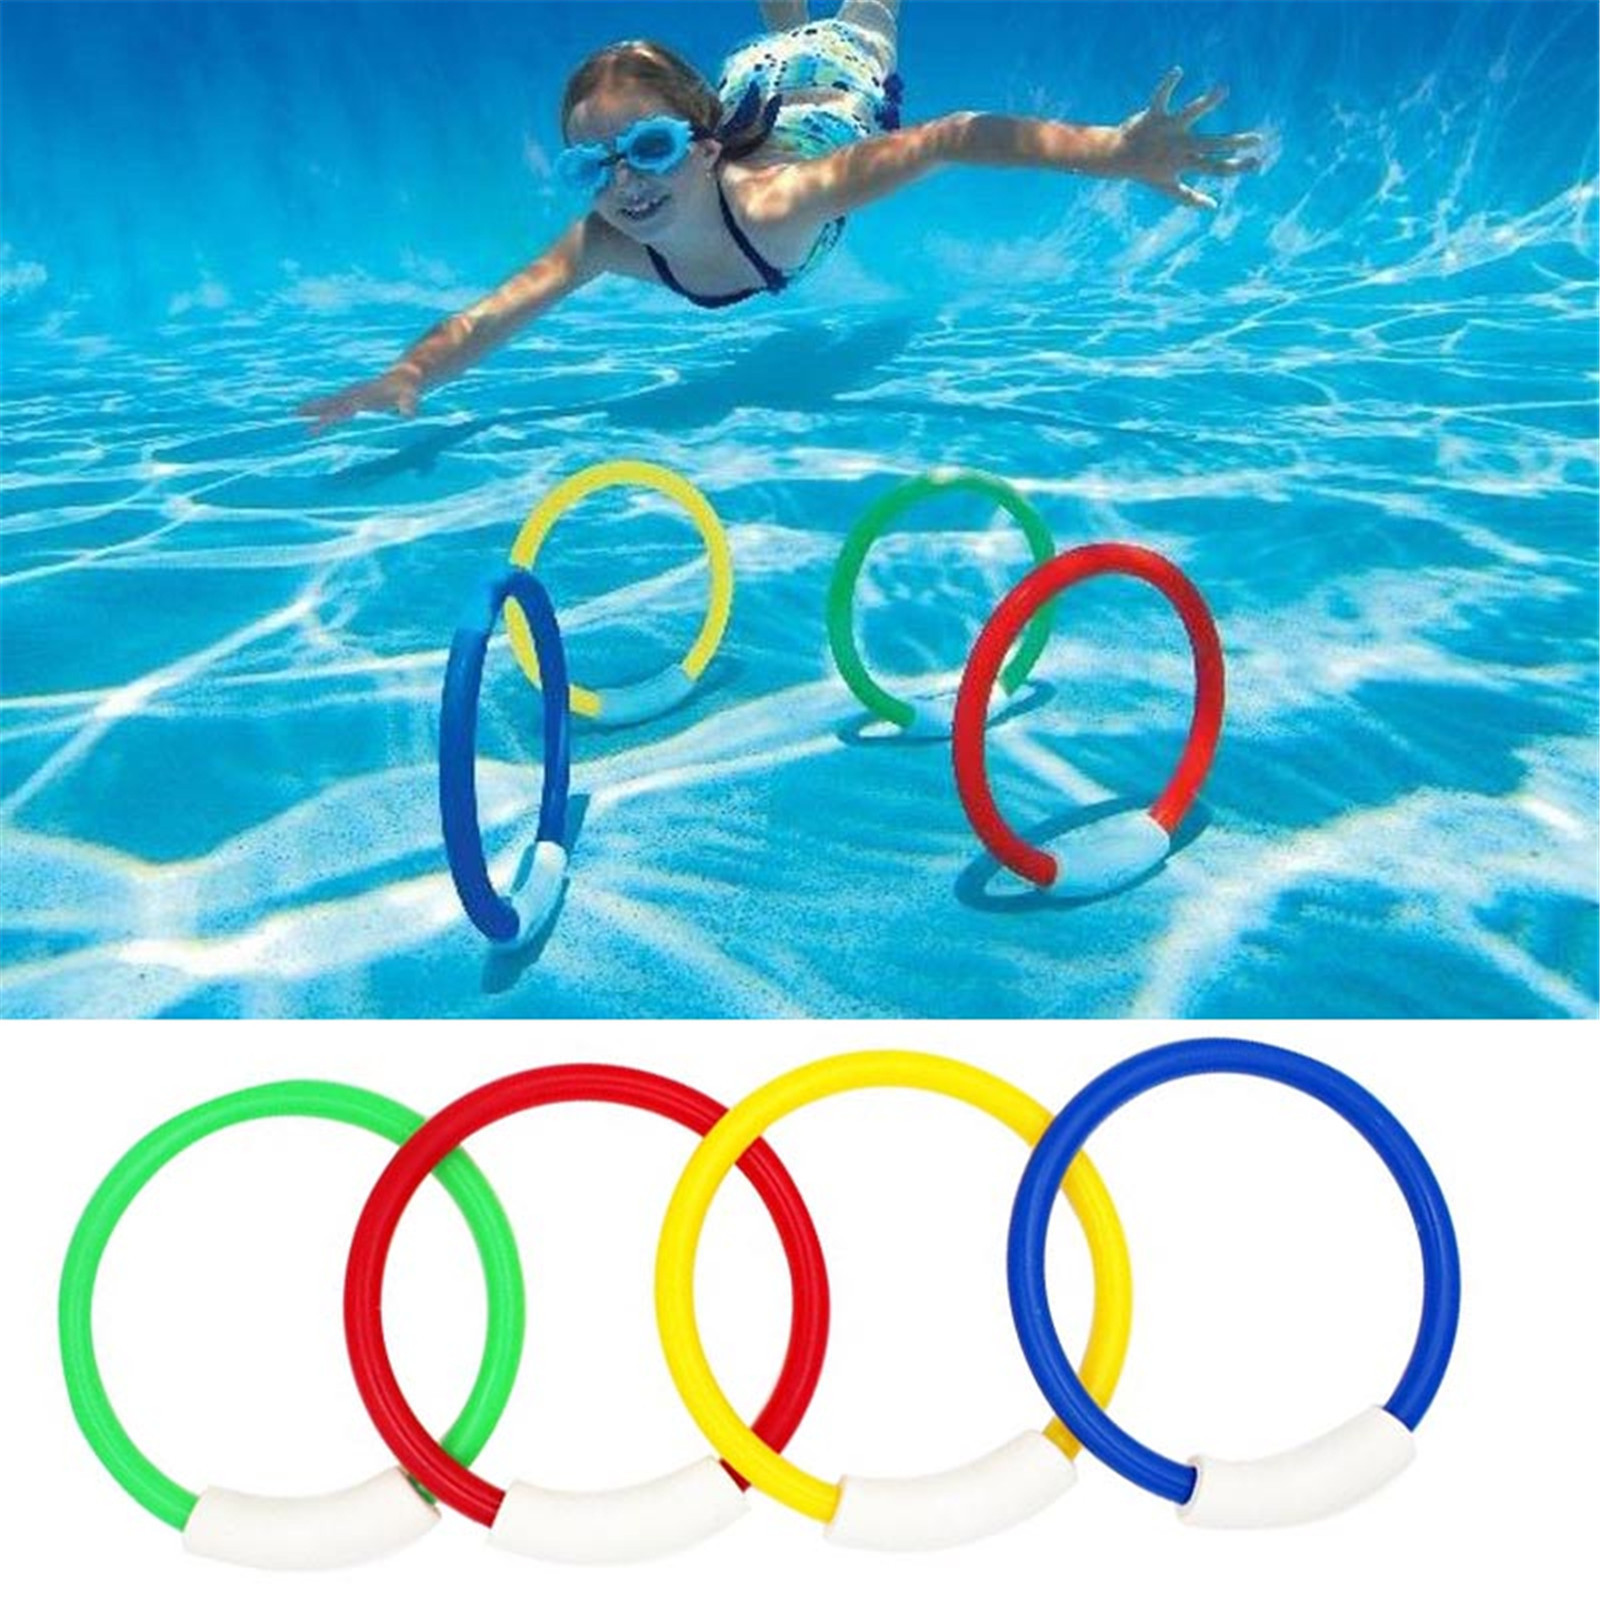 4PCS Diving Game Toys Set Rings Dive Underwater Funny Swimming Pool Gift for Kids Child Summer Throwing Toy Pool Accessories